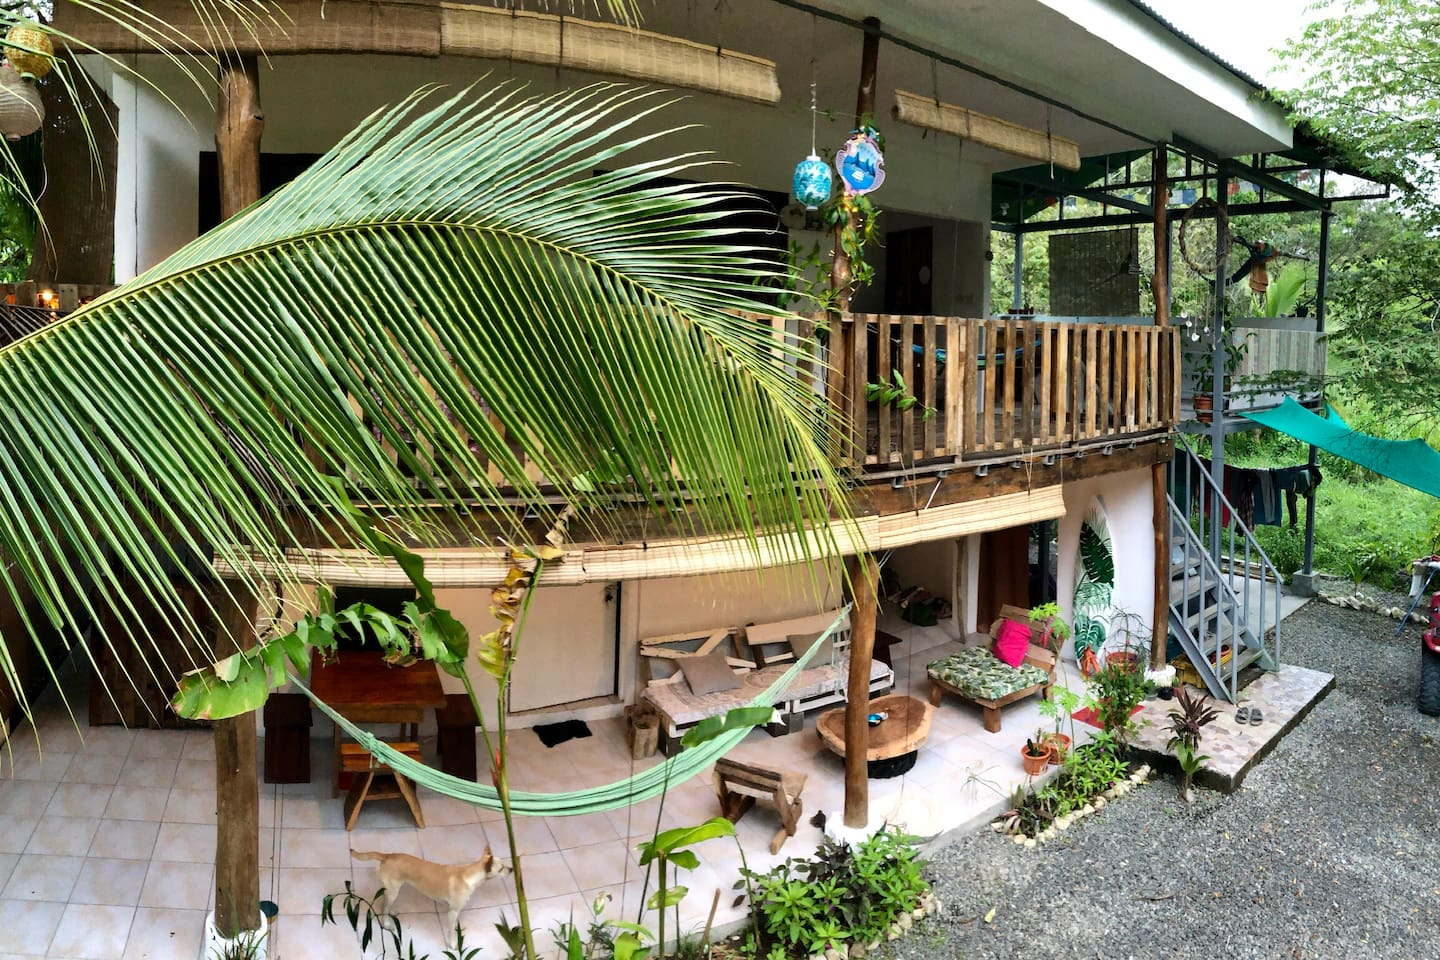 Housefront! The whole upstairs is for rent, we are living downstairs. Pura Vida!